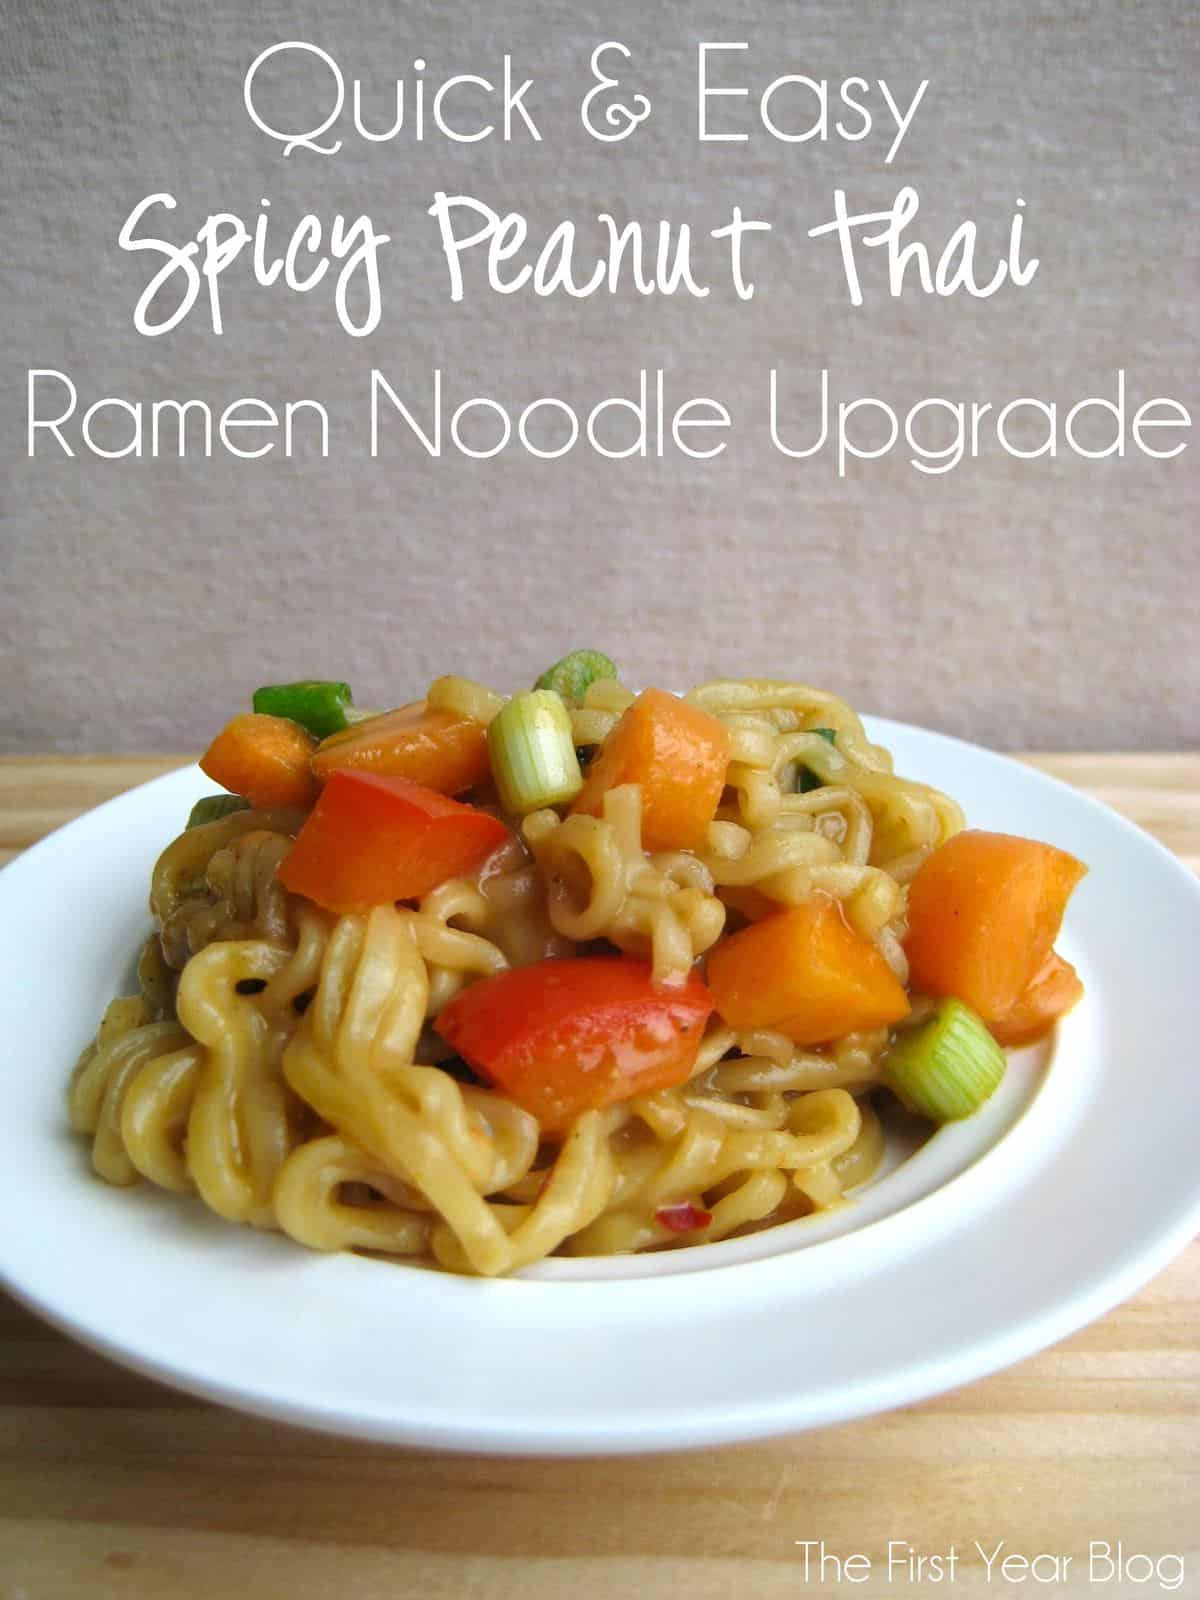 Spicy Peanut Thai Ramen Noodle Upgrade | The First Year